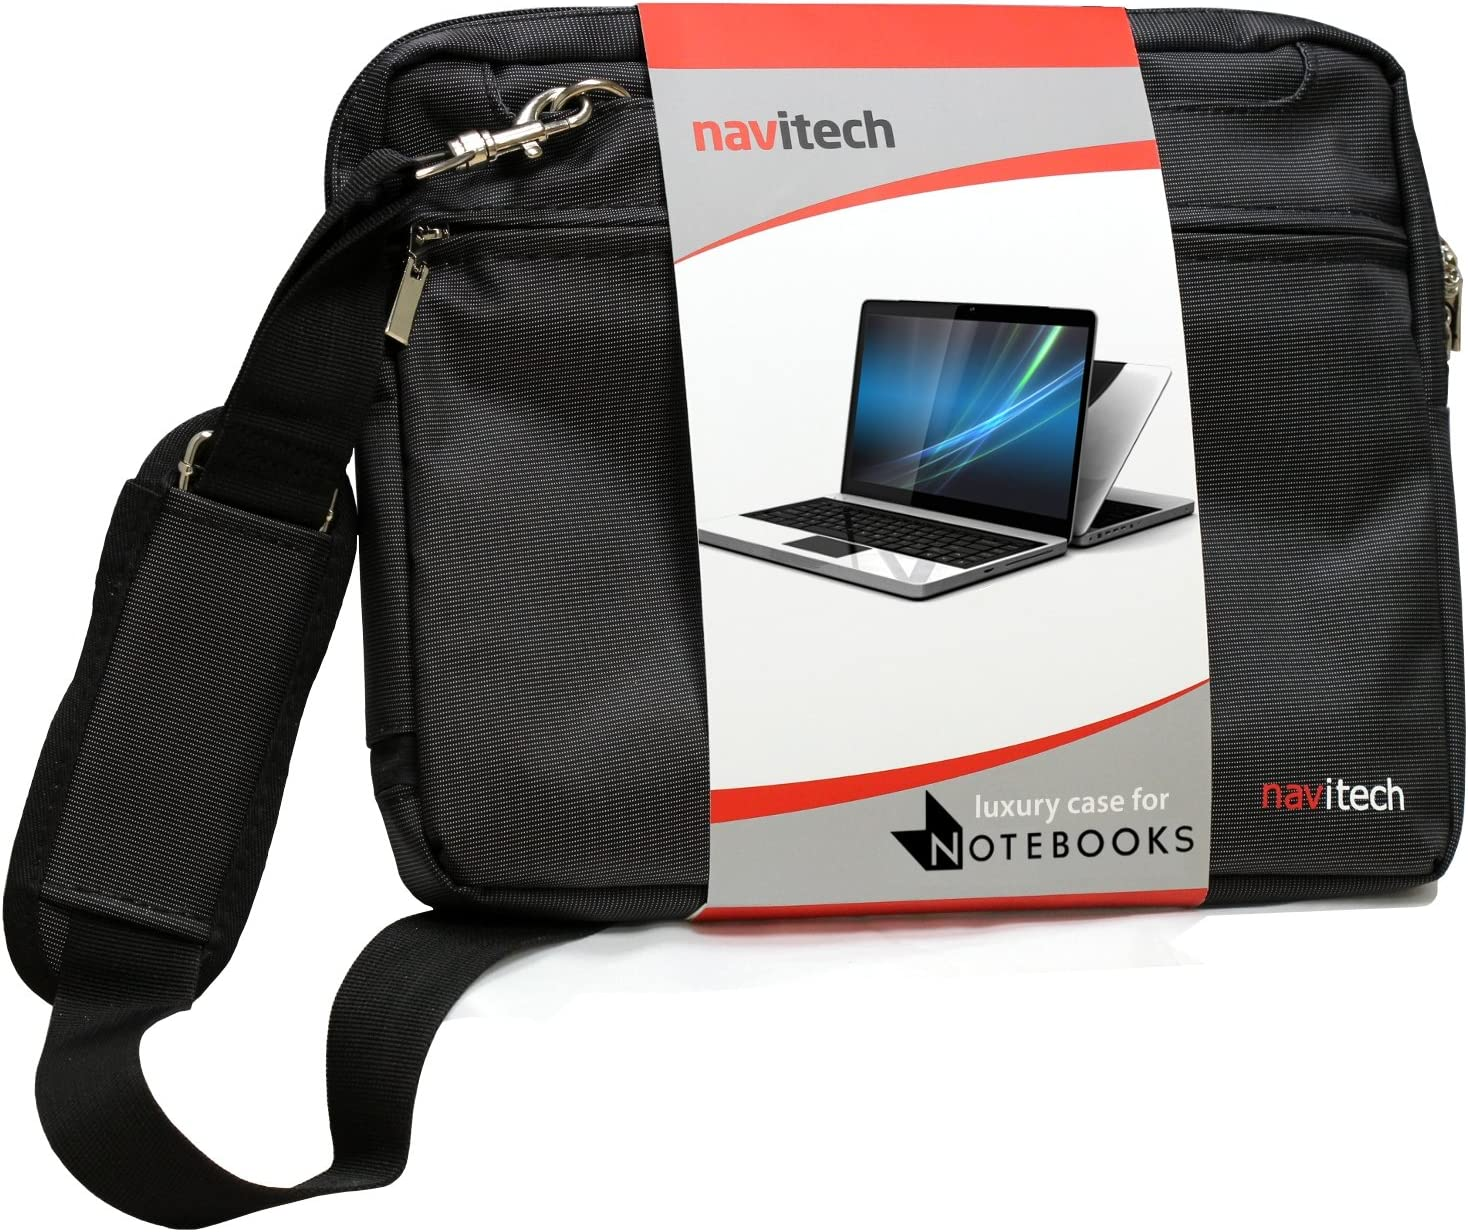 Navitech Black 11.6-Inch Laptop/Notebook/Ultrabook Case/Bag Compatible with The Sony VAIO FIT 11A / Vaio Tap 11 / VAIO Pro 11